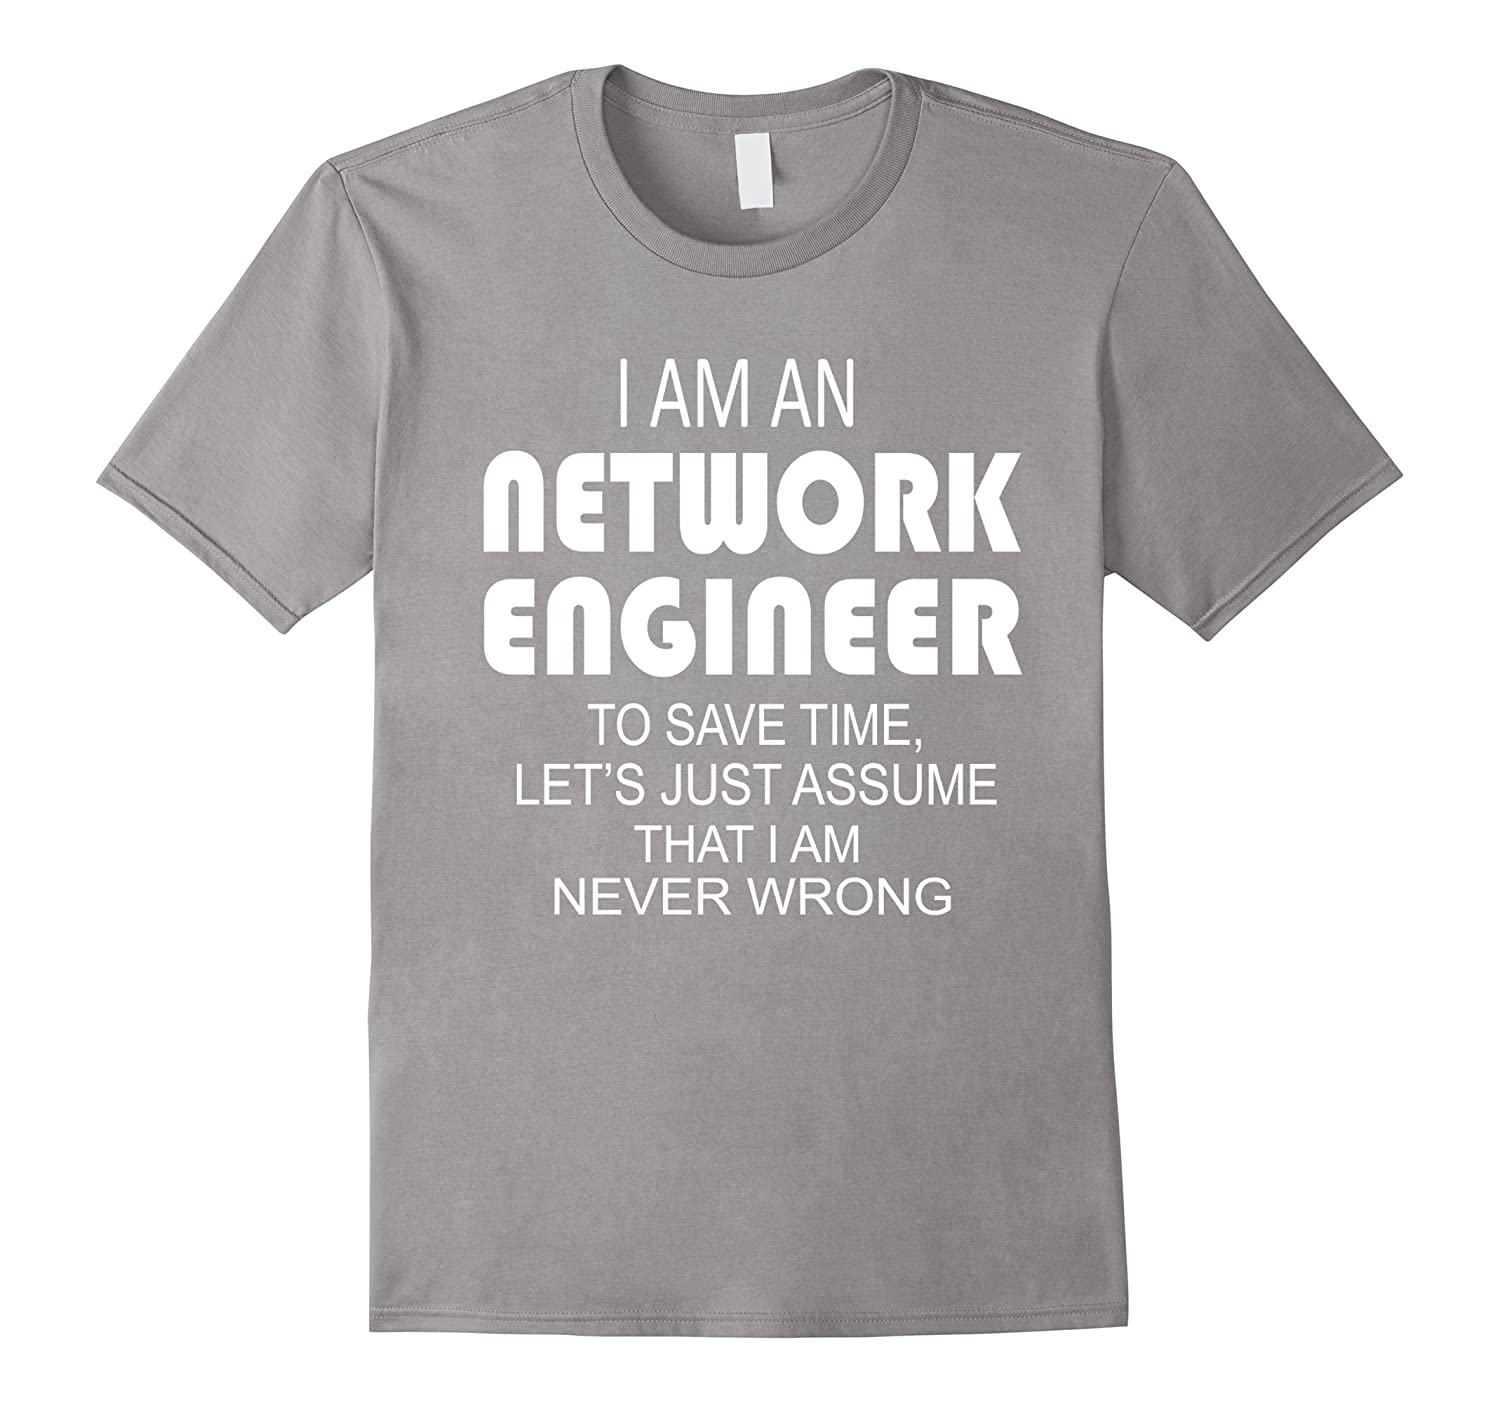 095723e0e I Am Network Engineer Gifts Idea For Any Engineer's T-shirt-CL ...